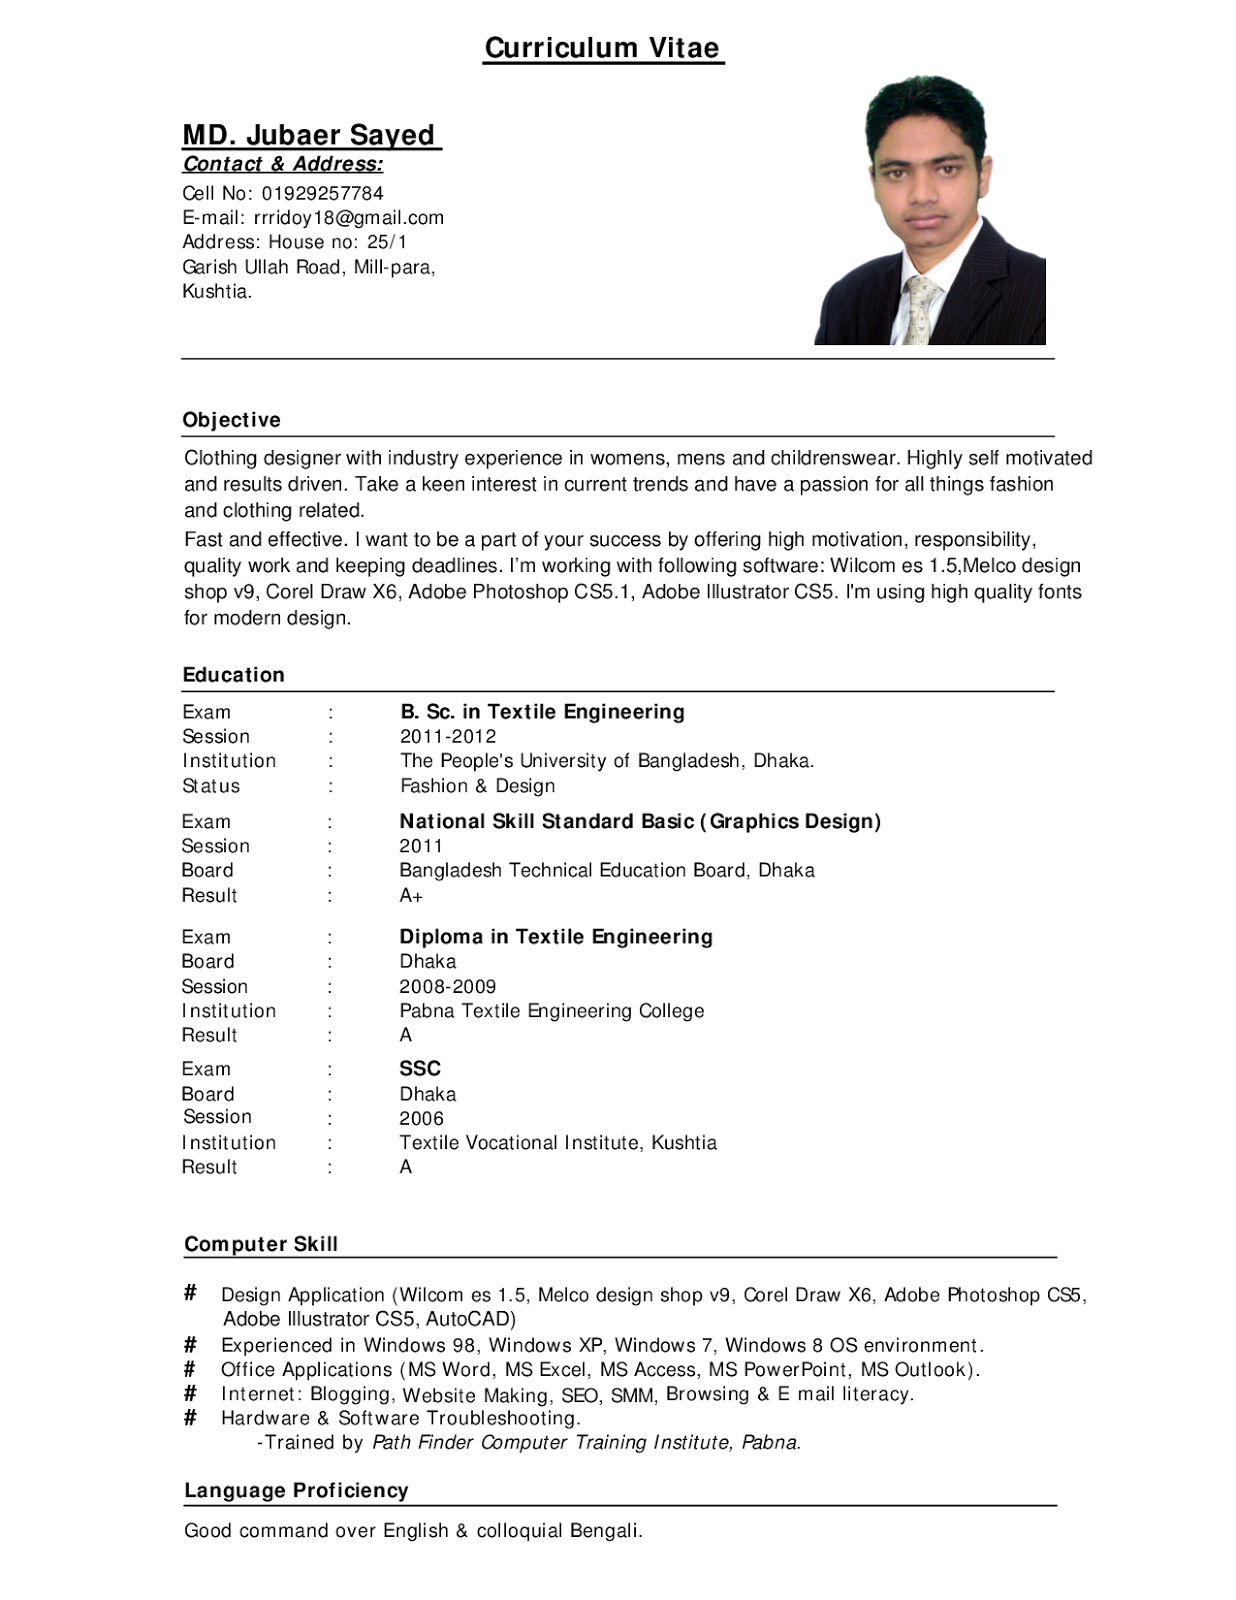 Elegant Resume Samples Pdf | Sample Resumes